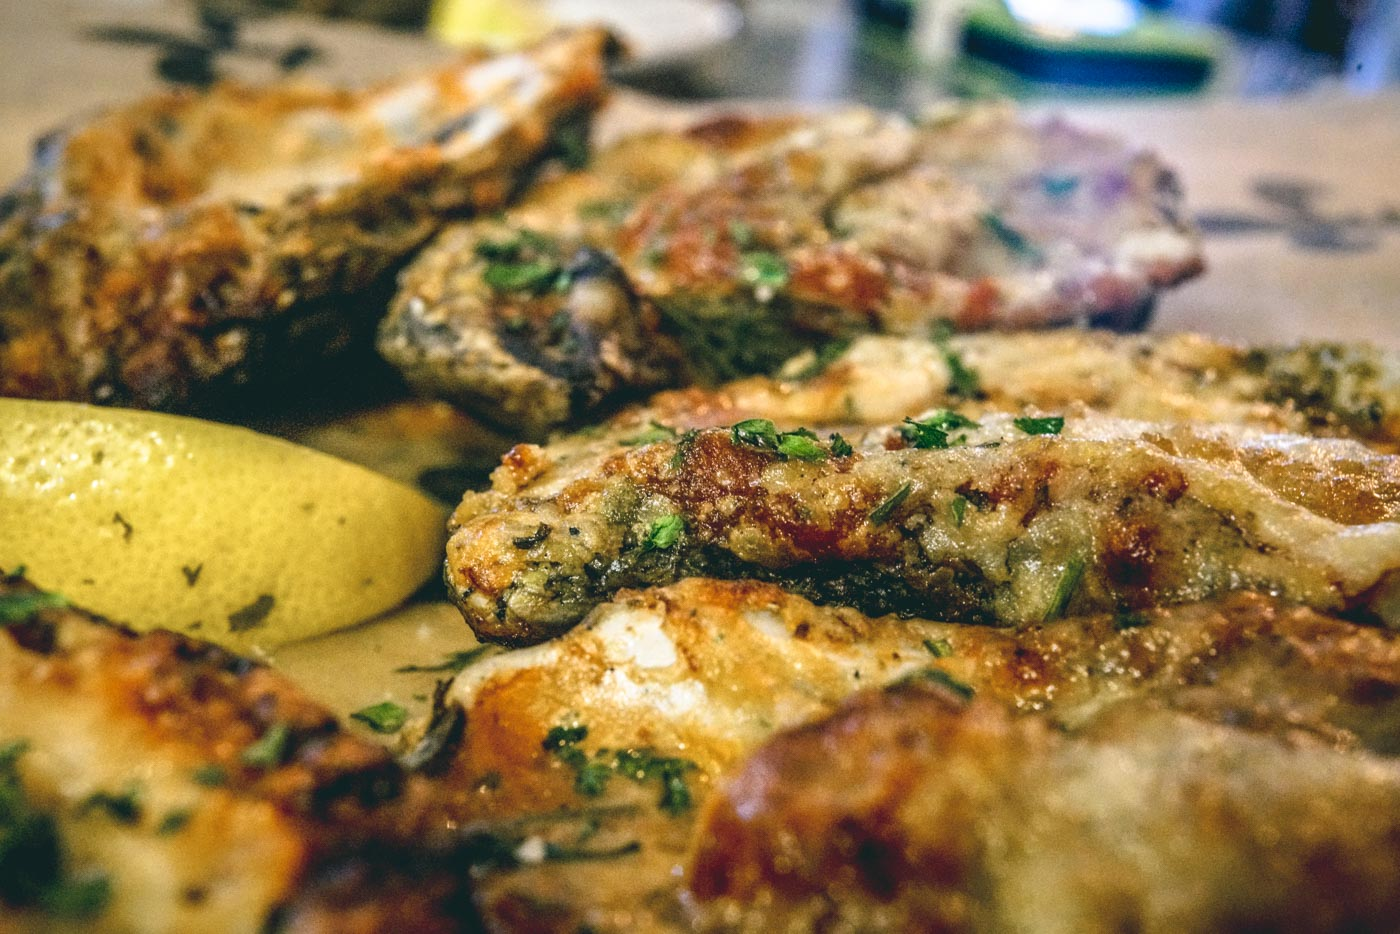 Char-grilled oysters - a specialty in New Orleans